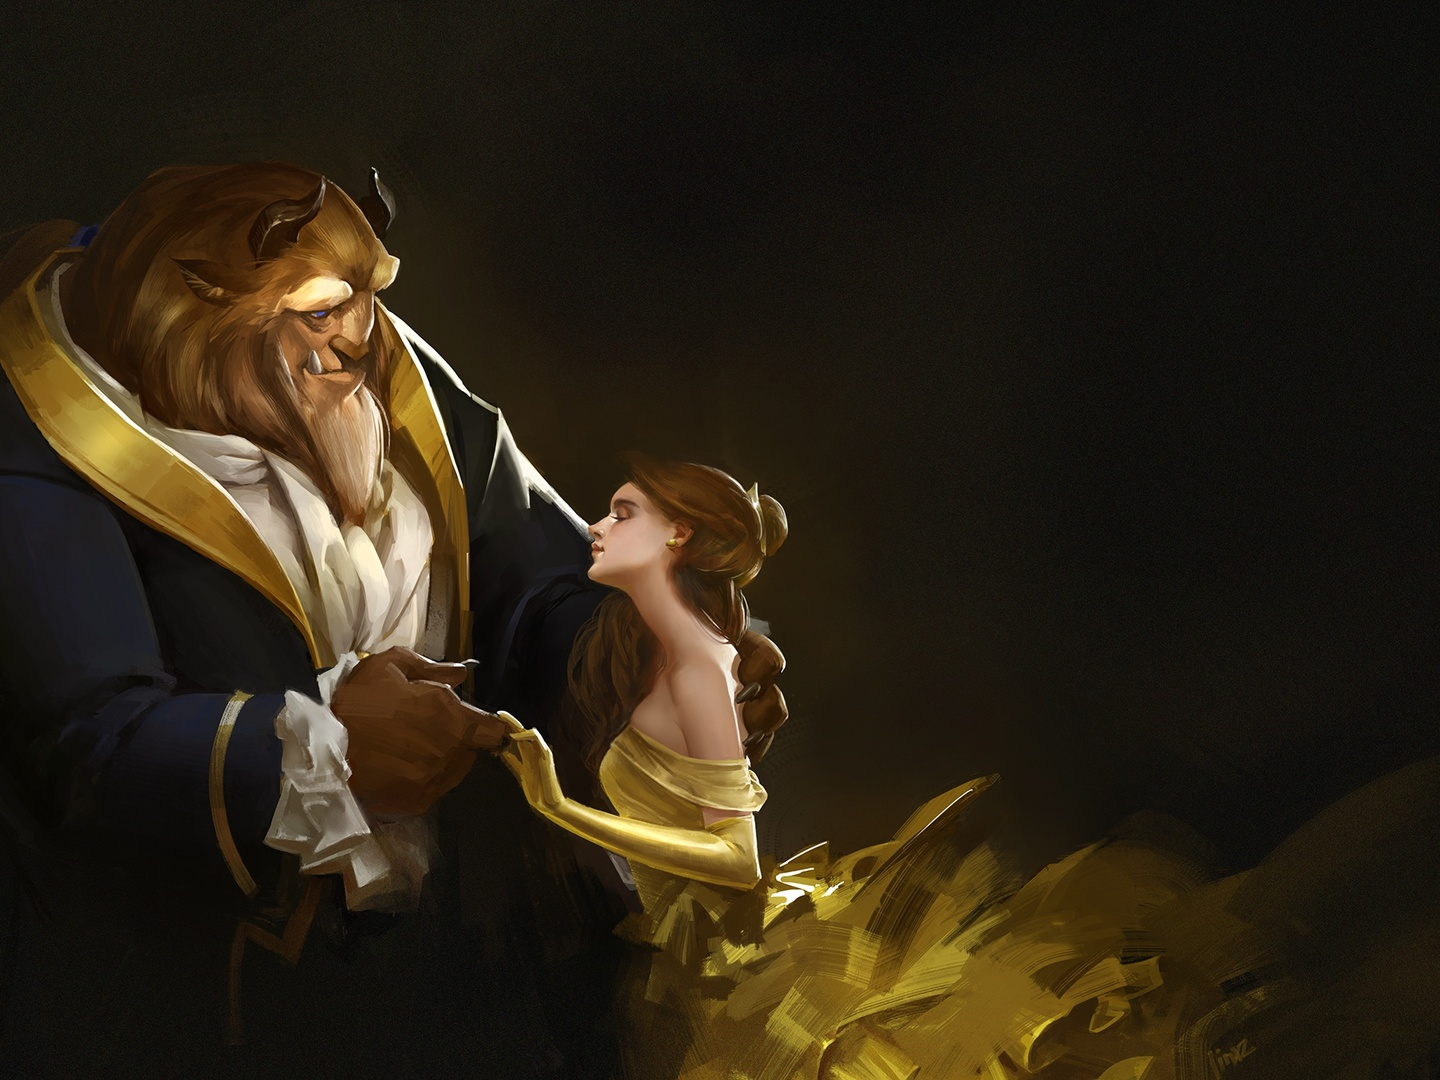 Download Beauty And Beast: Download Beauty And The Beast Artwork HD Wallpaper In